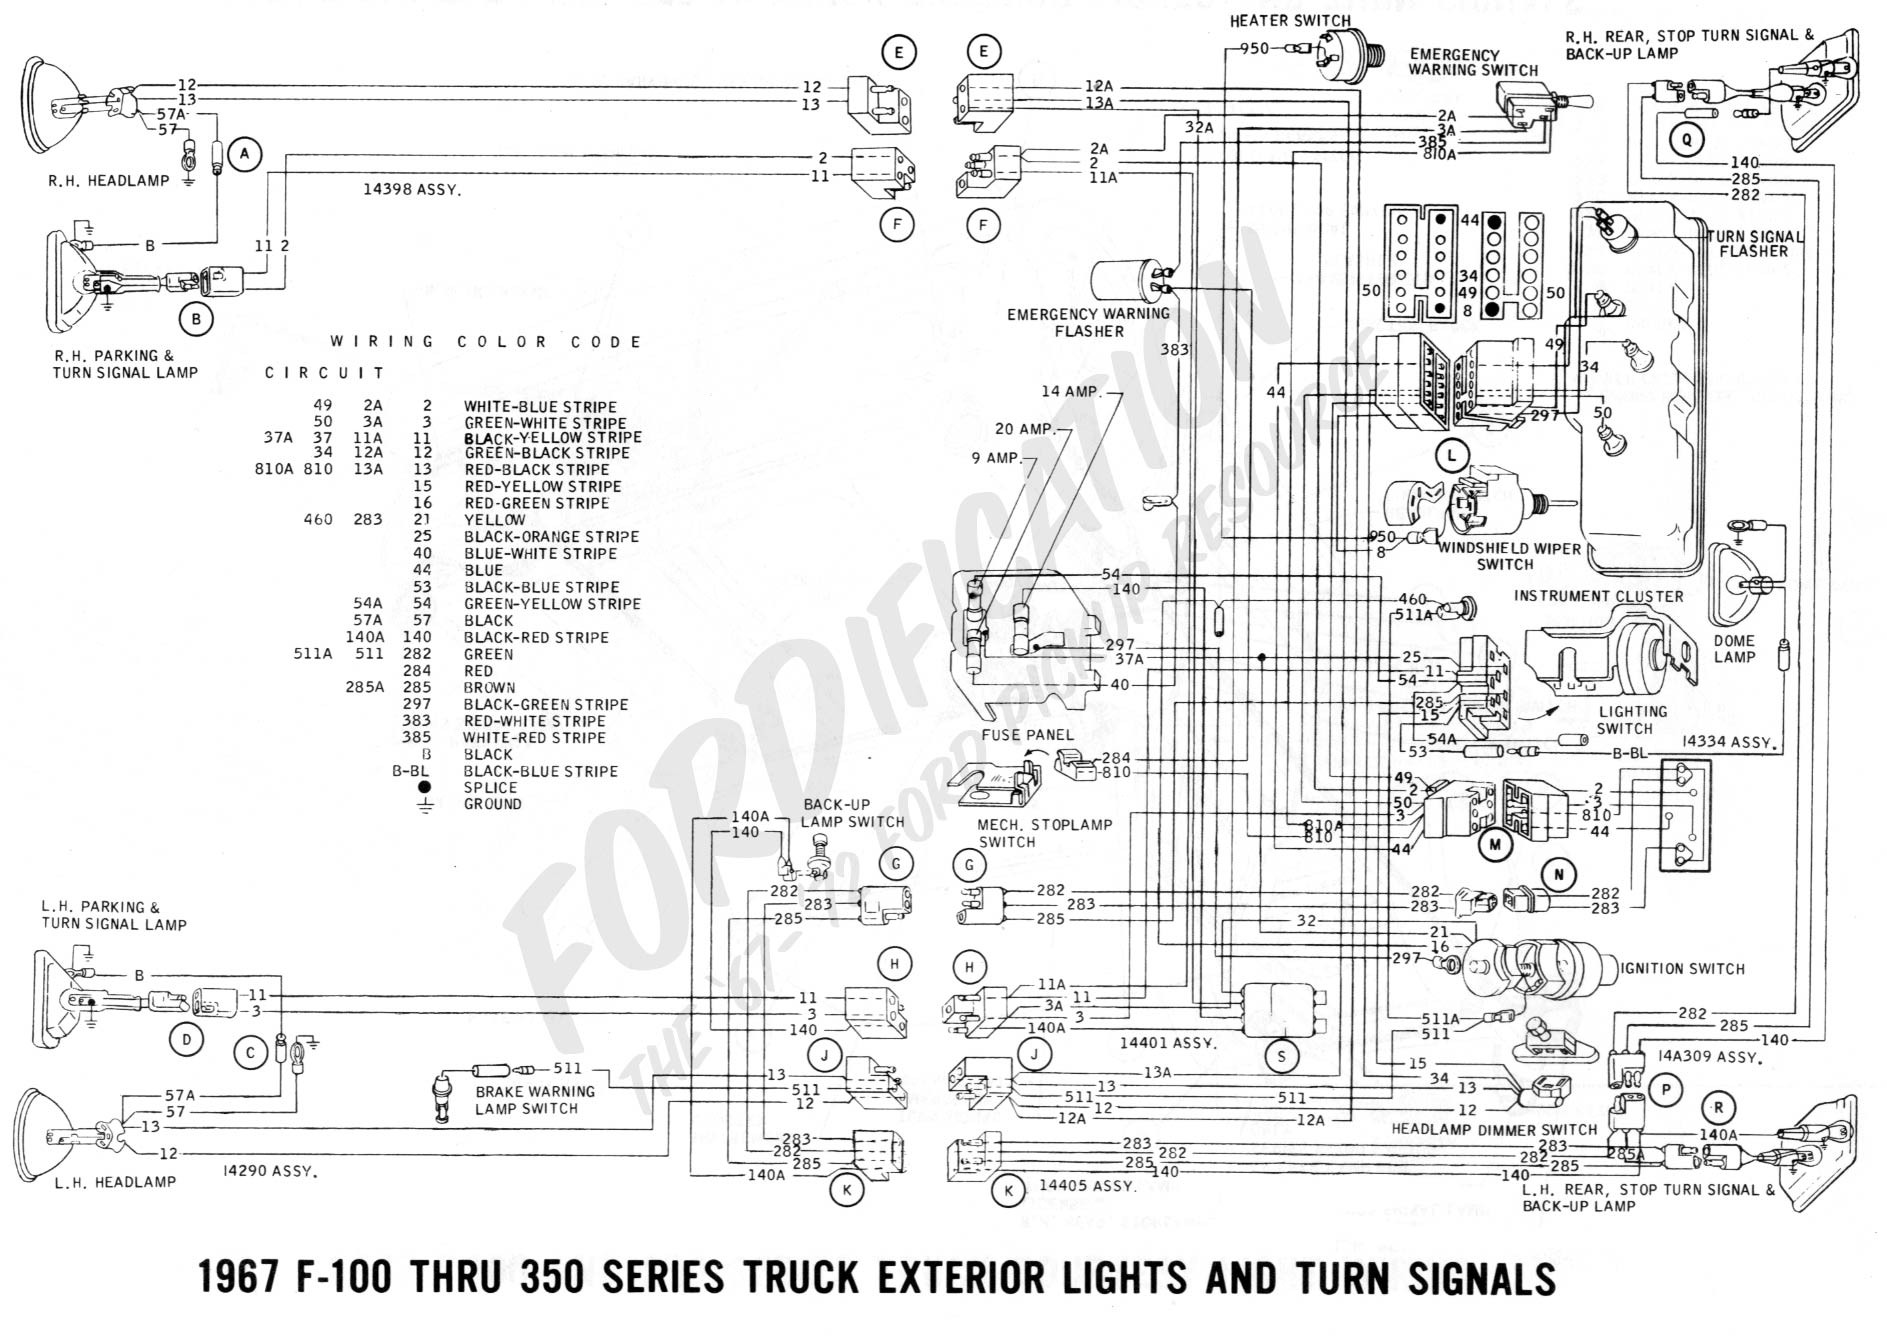 Signal Light Flasher Wiring Diagram ford Truck Technical Drawings and Schematics Section H Wiring Of Signal Light Flasher Wiring Diagram